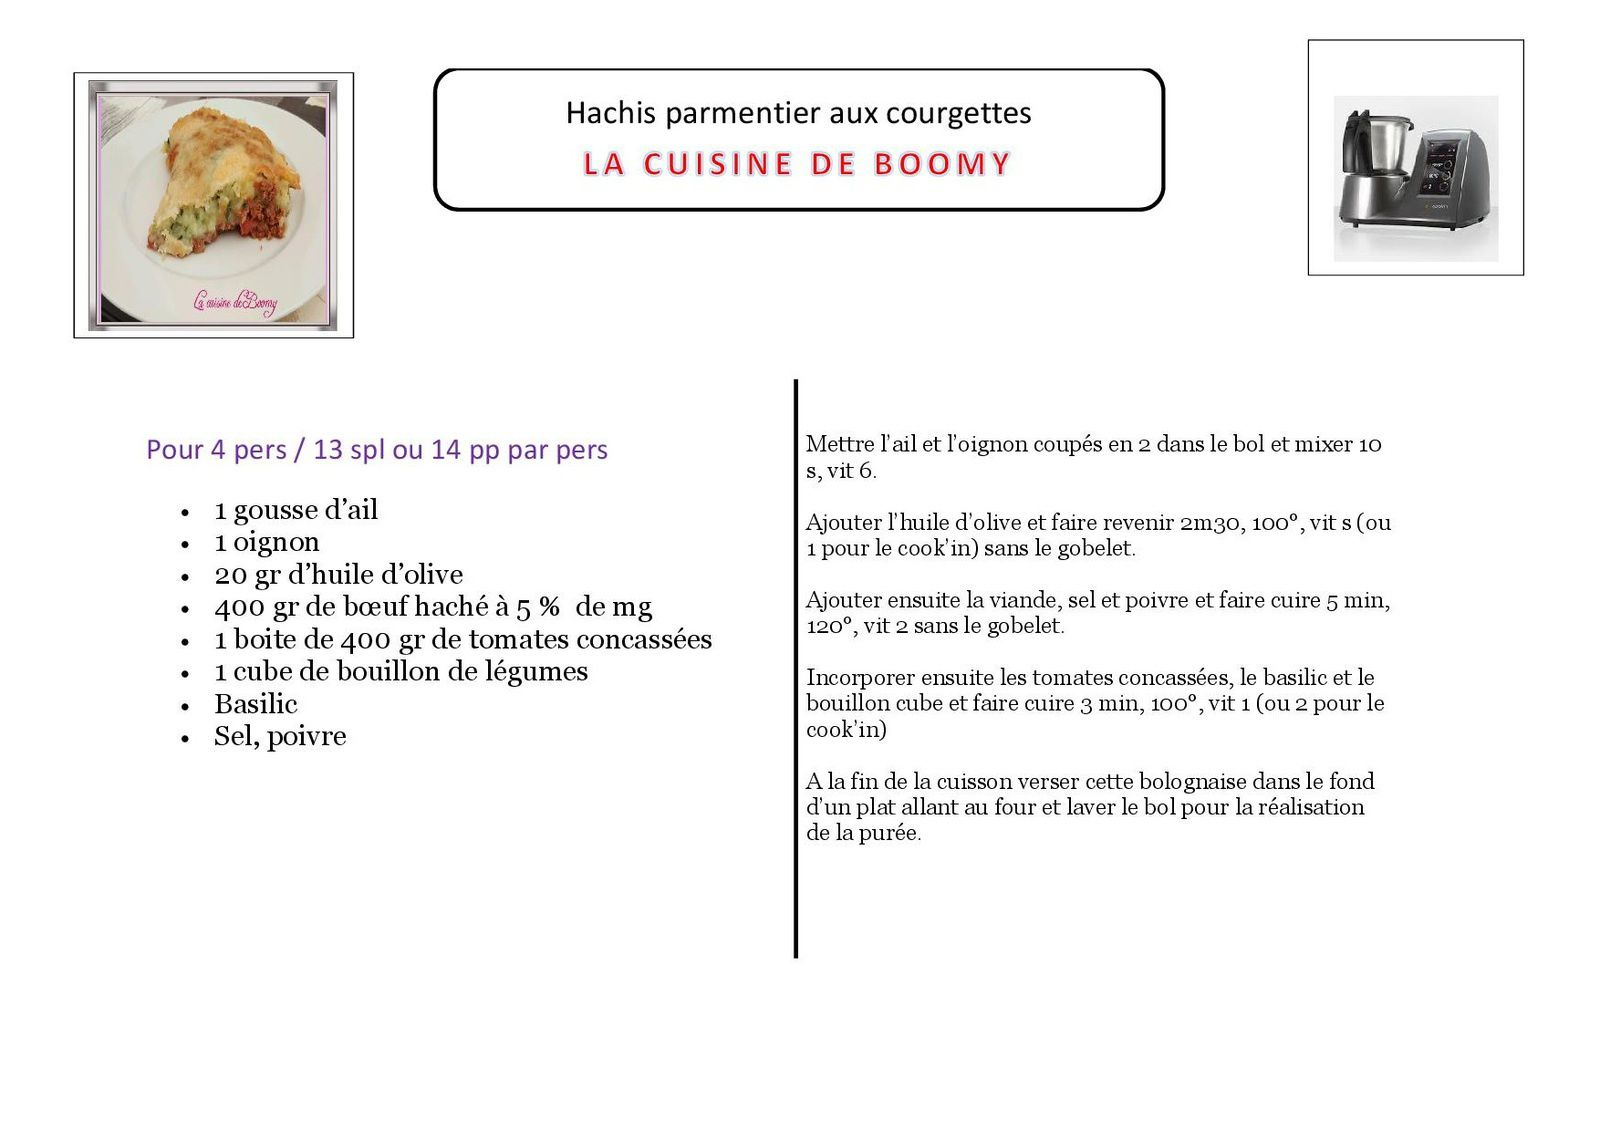 Hachis parmentier aux courgettes  (I-Cook'in)